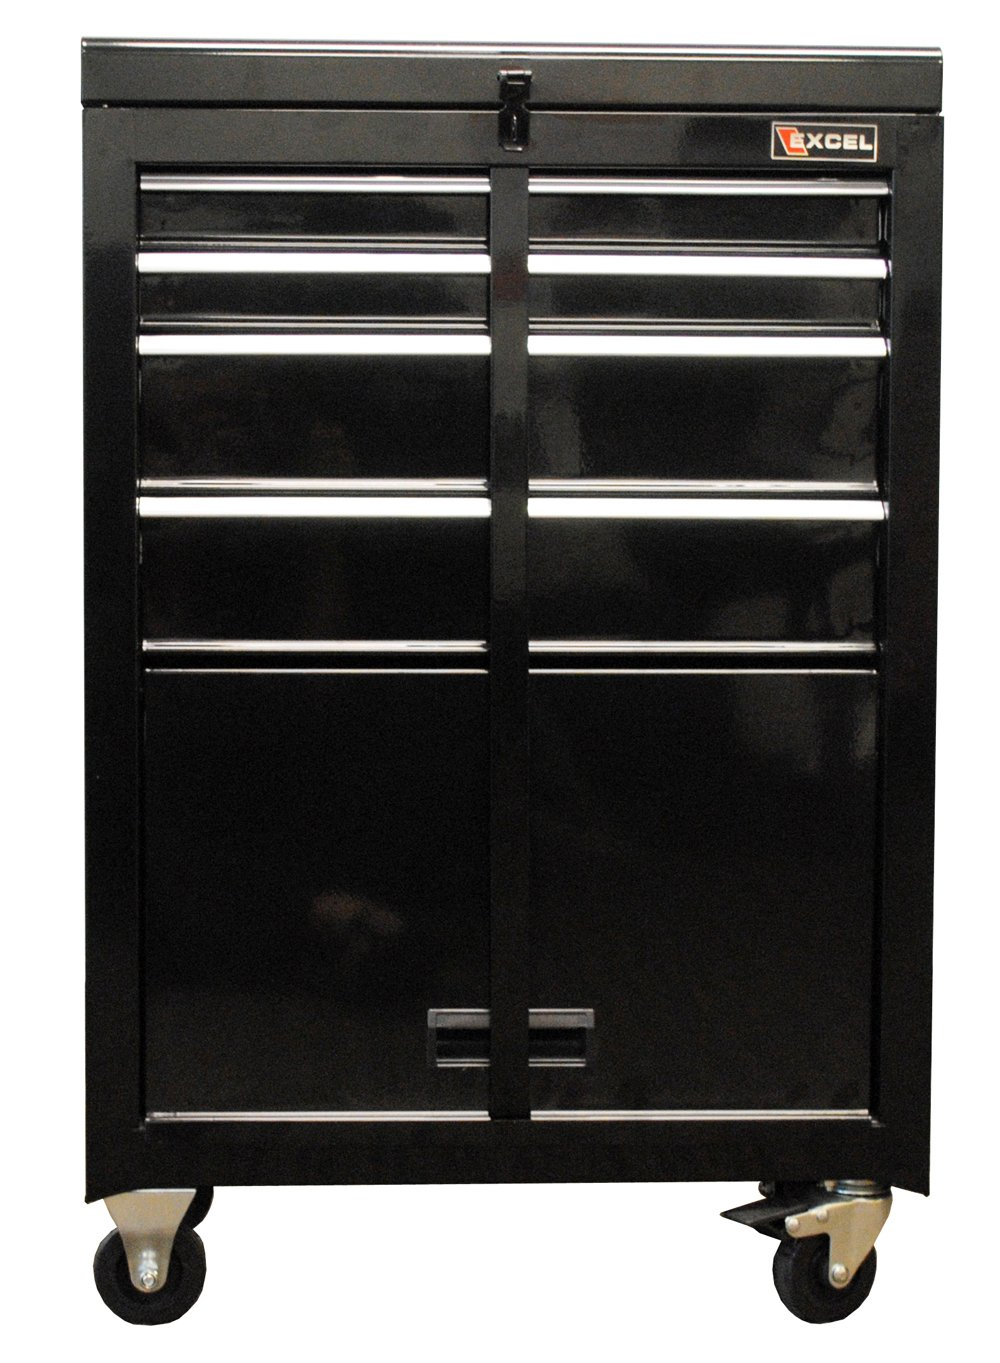 Ordinaire Amazon.com: Excel TB2201X Black 22 Inch Steel Chest Roller Cabinet  Combination, Black: Home Improvement